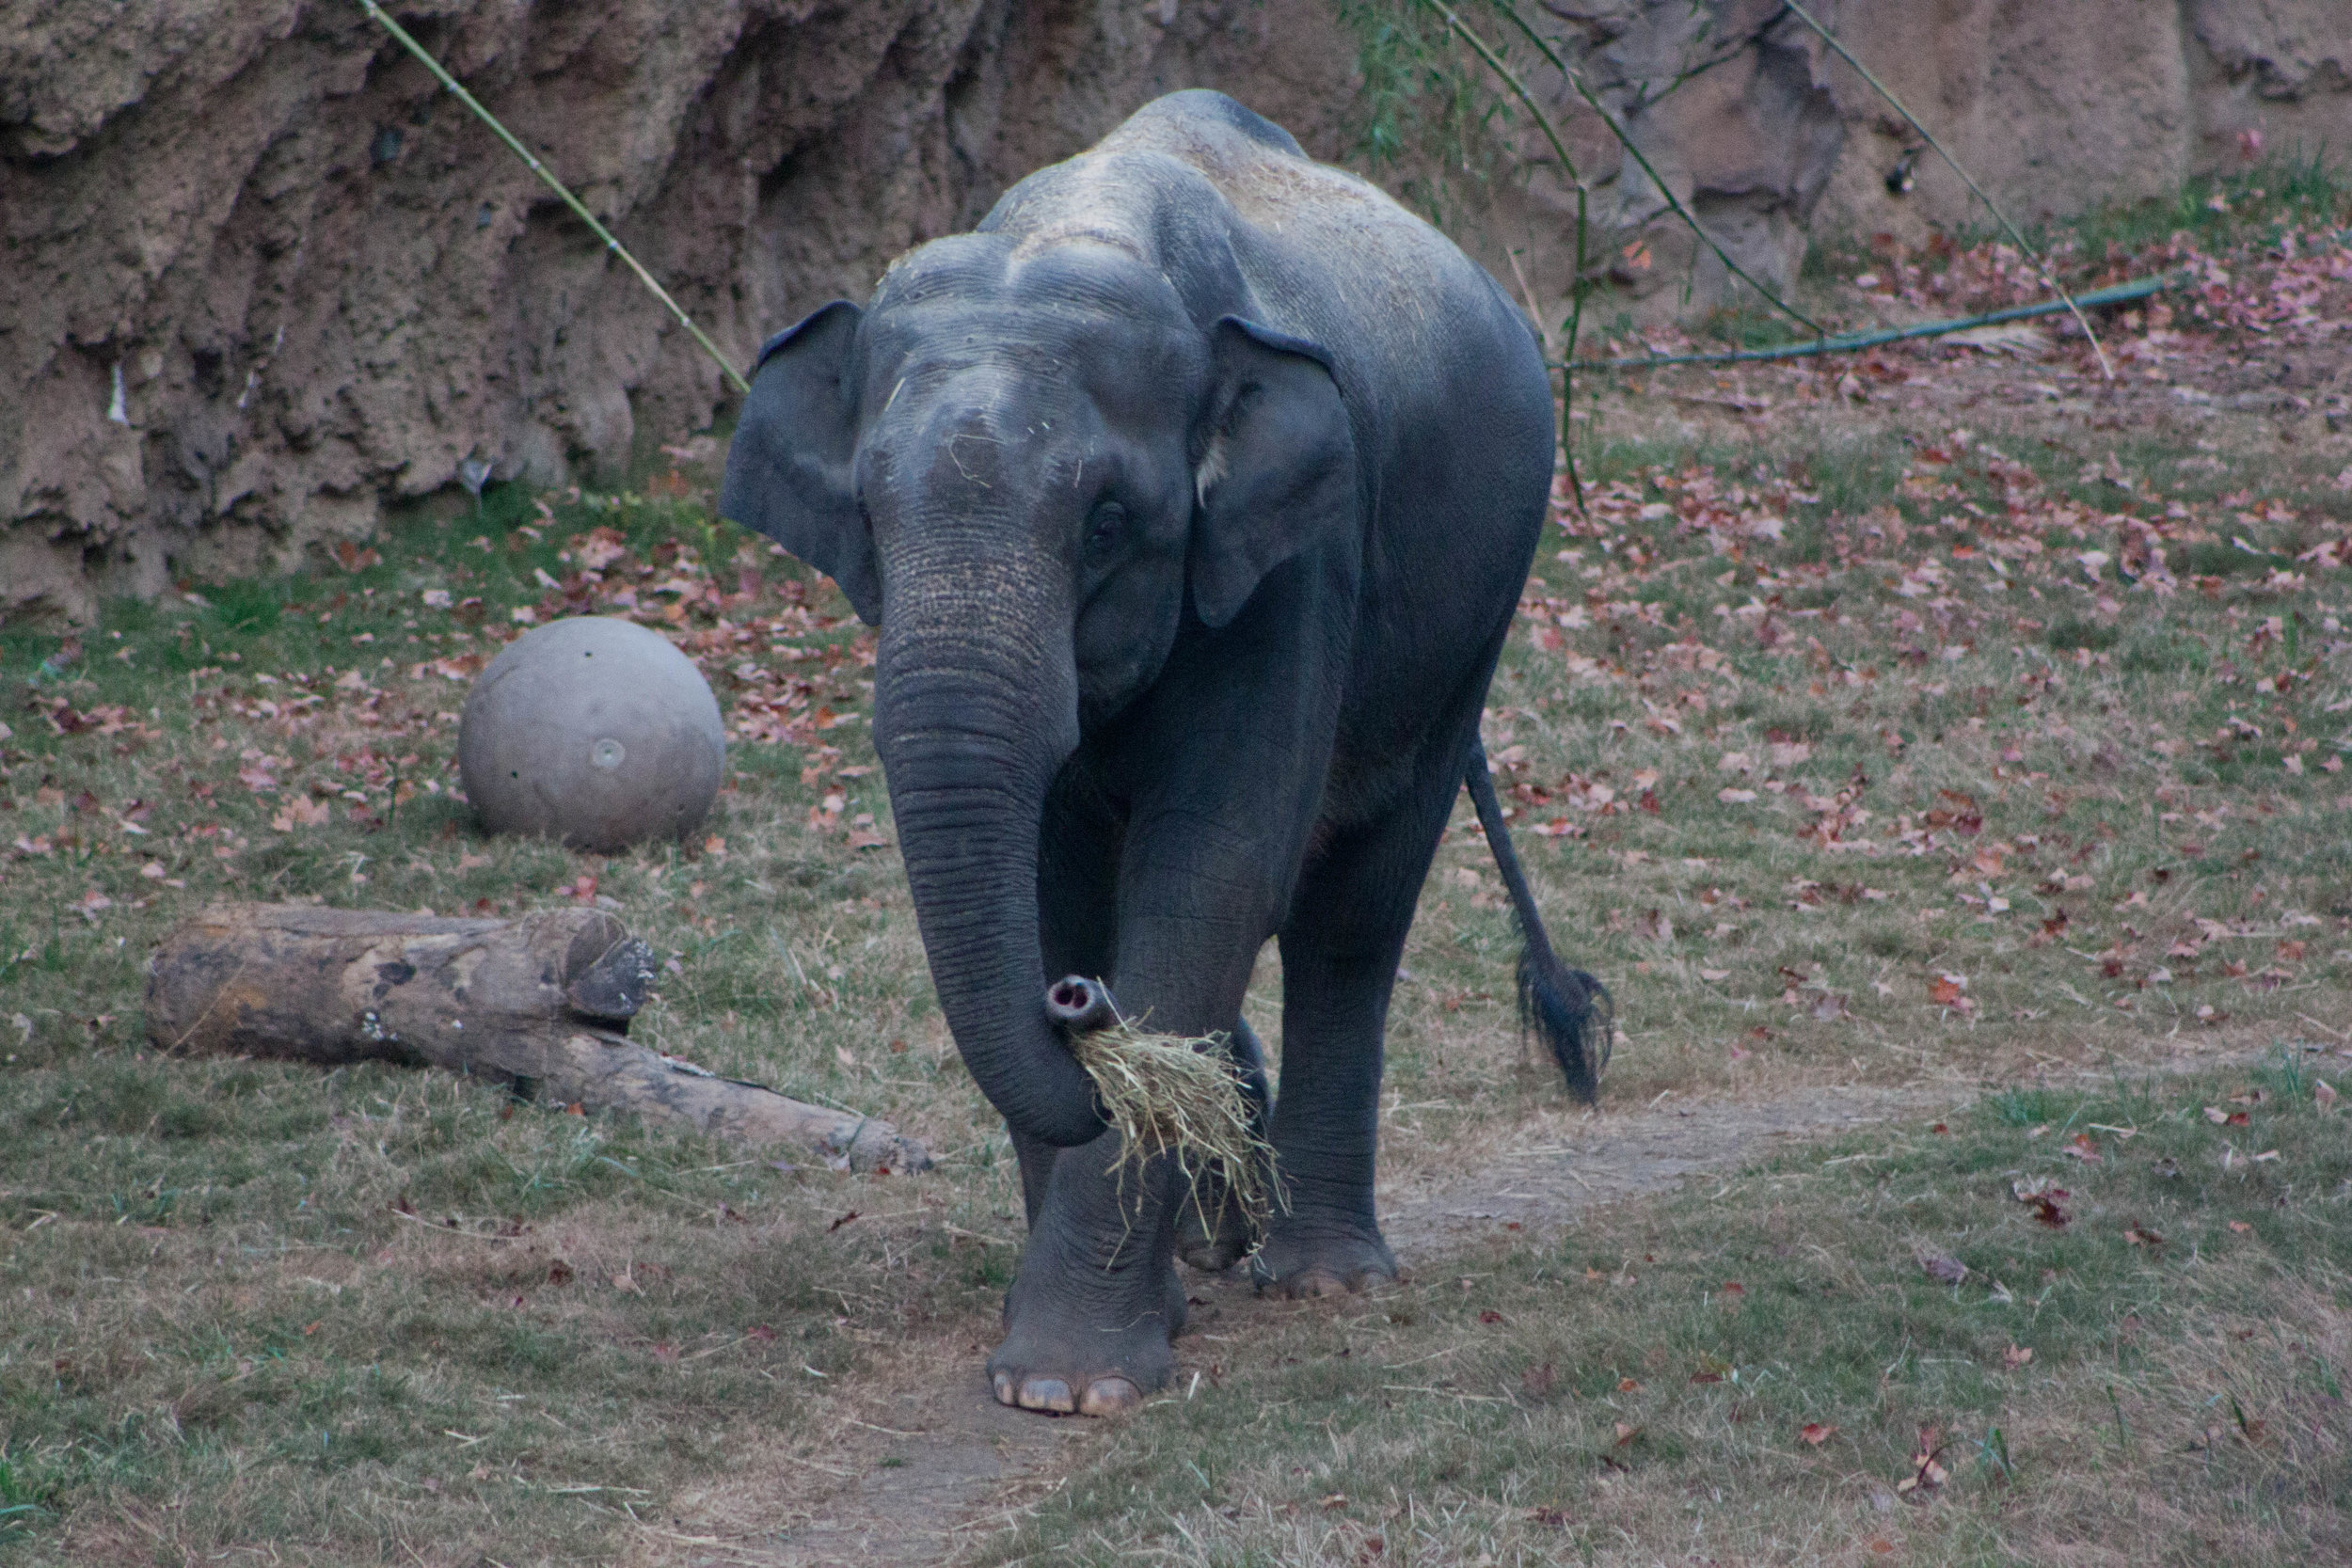 An elephant prepares to eat a snack at  the Smithsonian's National Zoo  in Washington, D.C., October 2012.